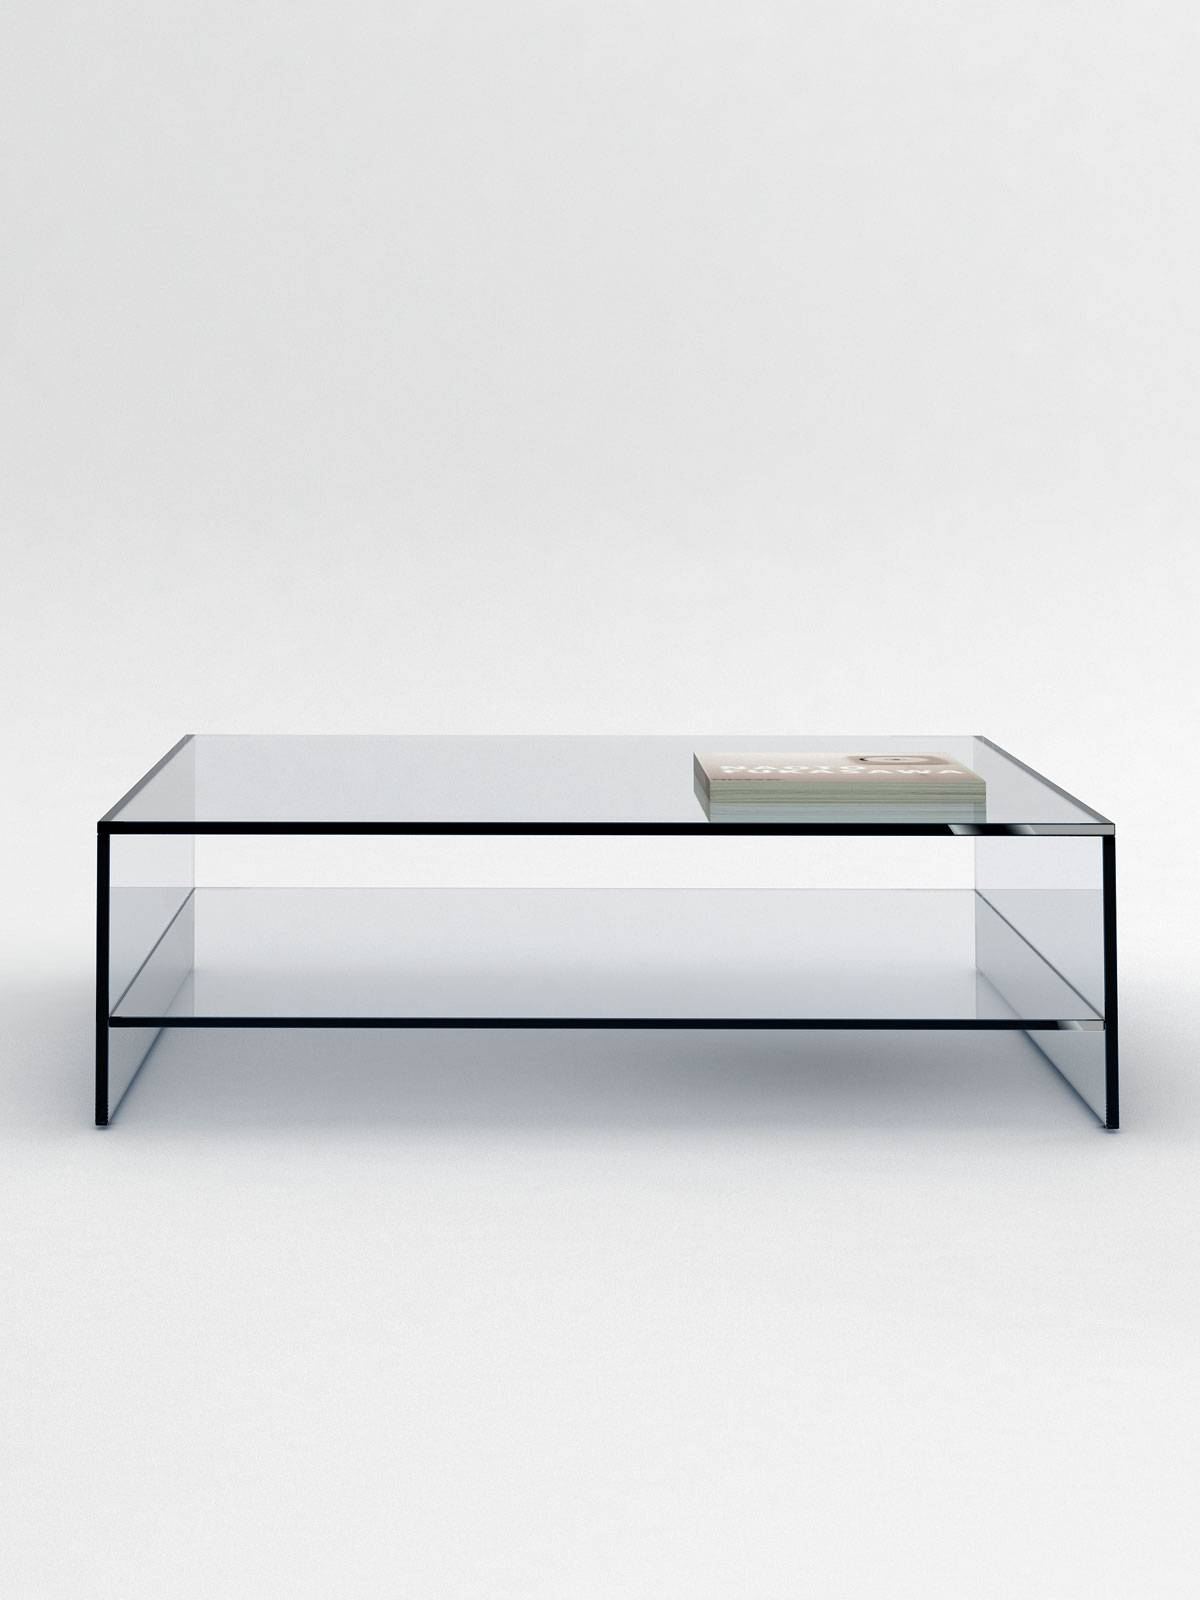 Glass Coffee Table With Shelf - Coffee Tables Made To Order. in Square Glass Coffee Tables (Image 5 of 15)